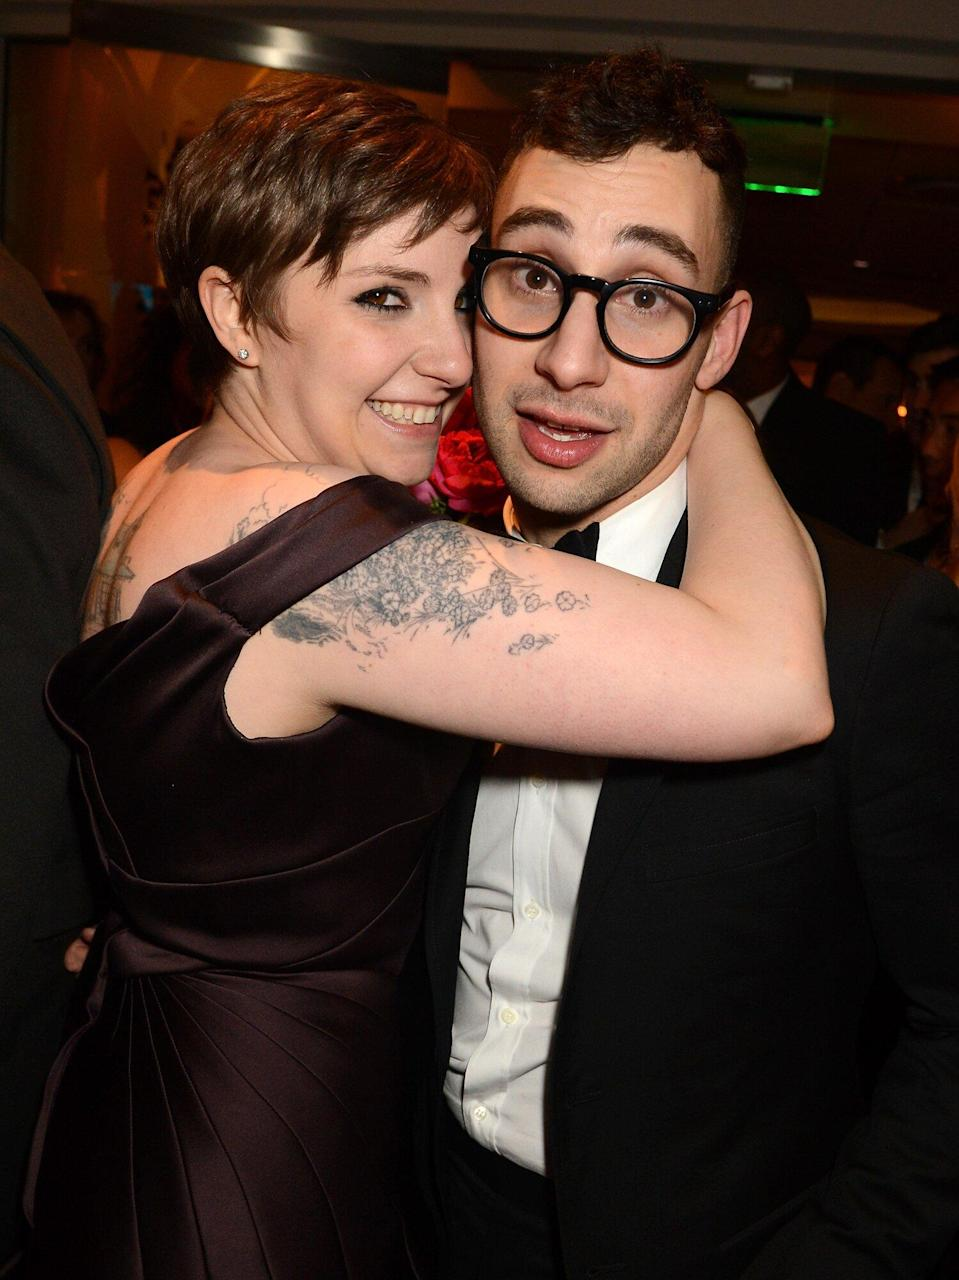 I Didn't Really Care About Lena Dunham or Jack Antonoff Individually, but I Shipped Them So Hard